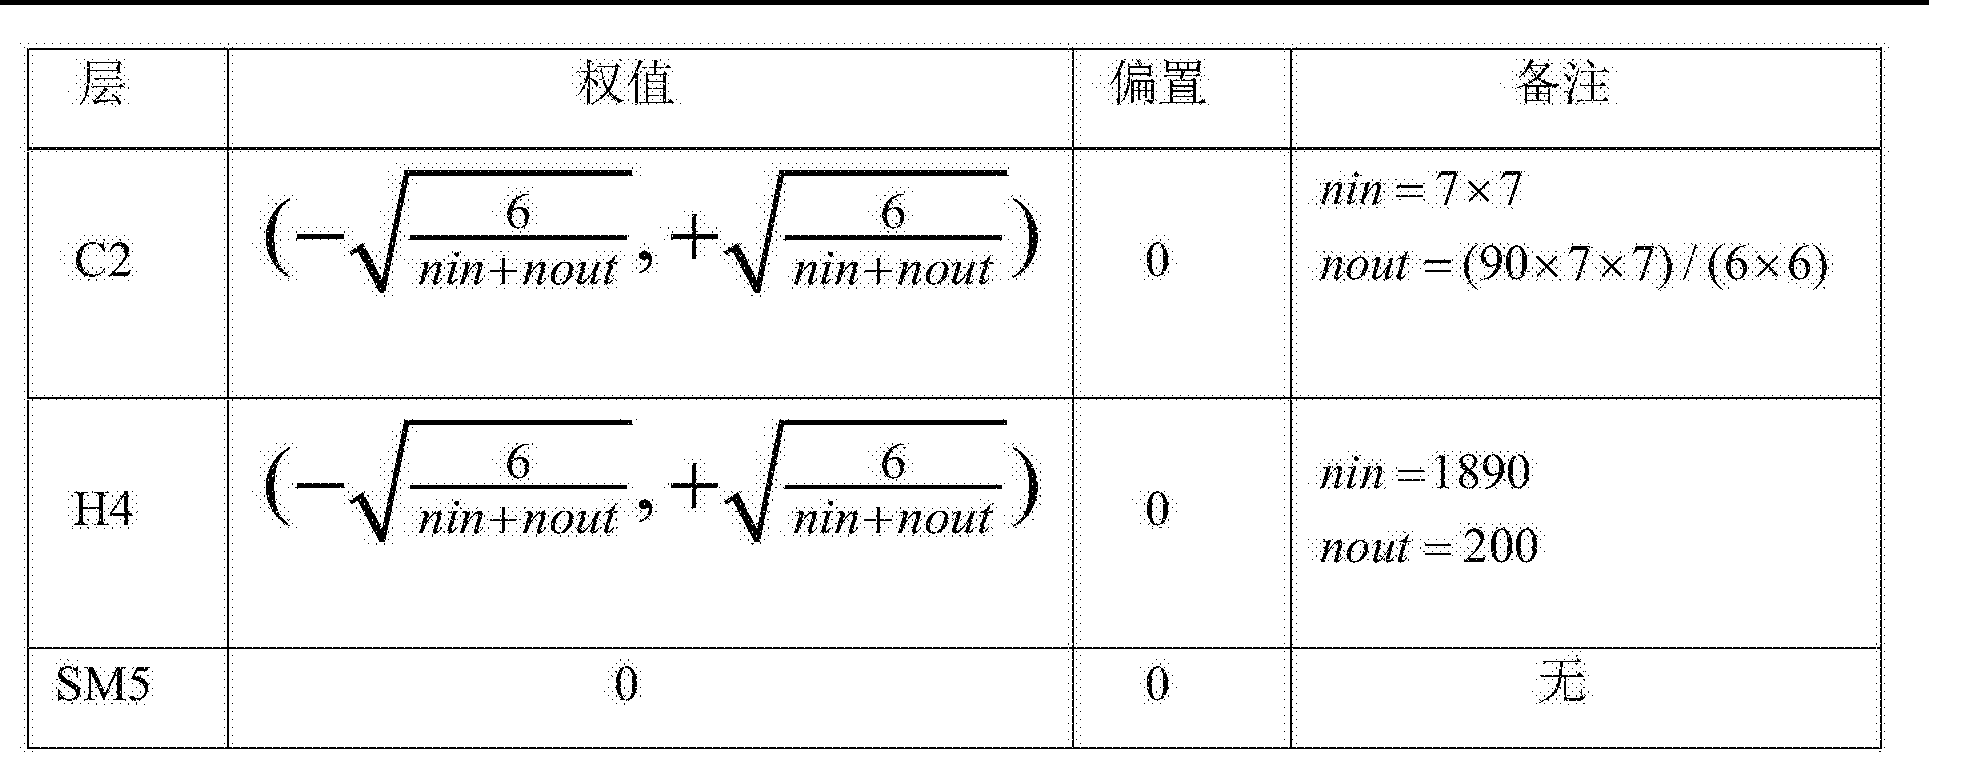 CN105354572A - Automatic identification system of number